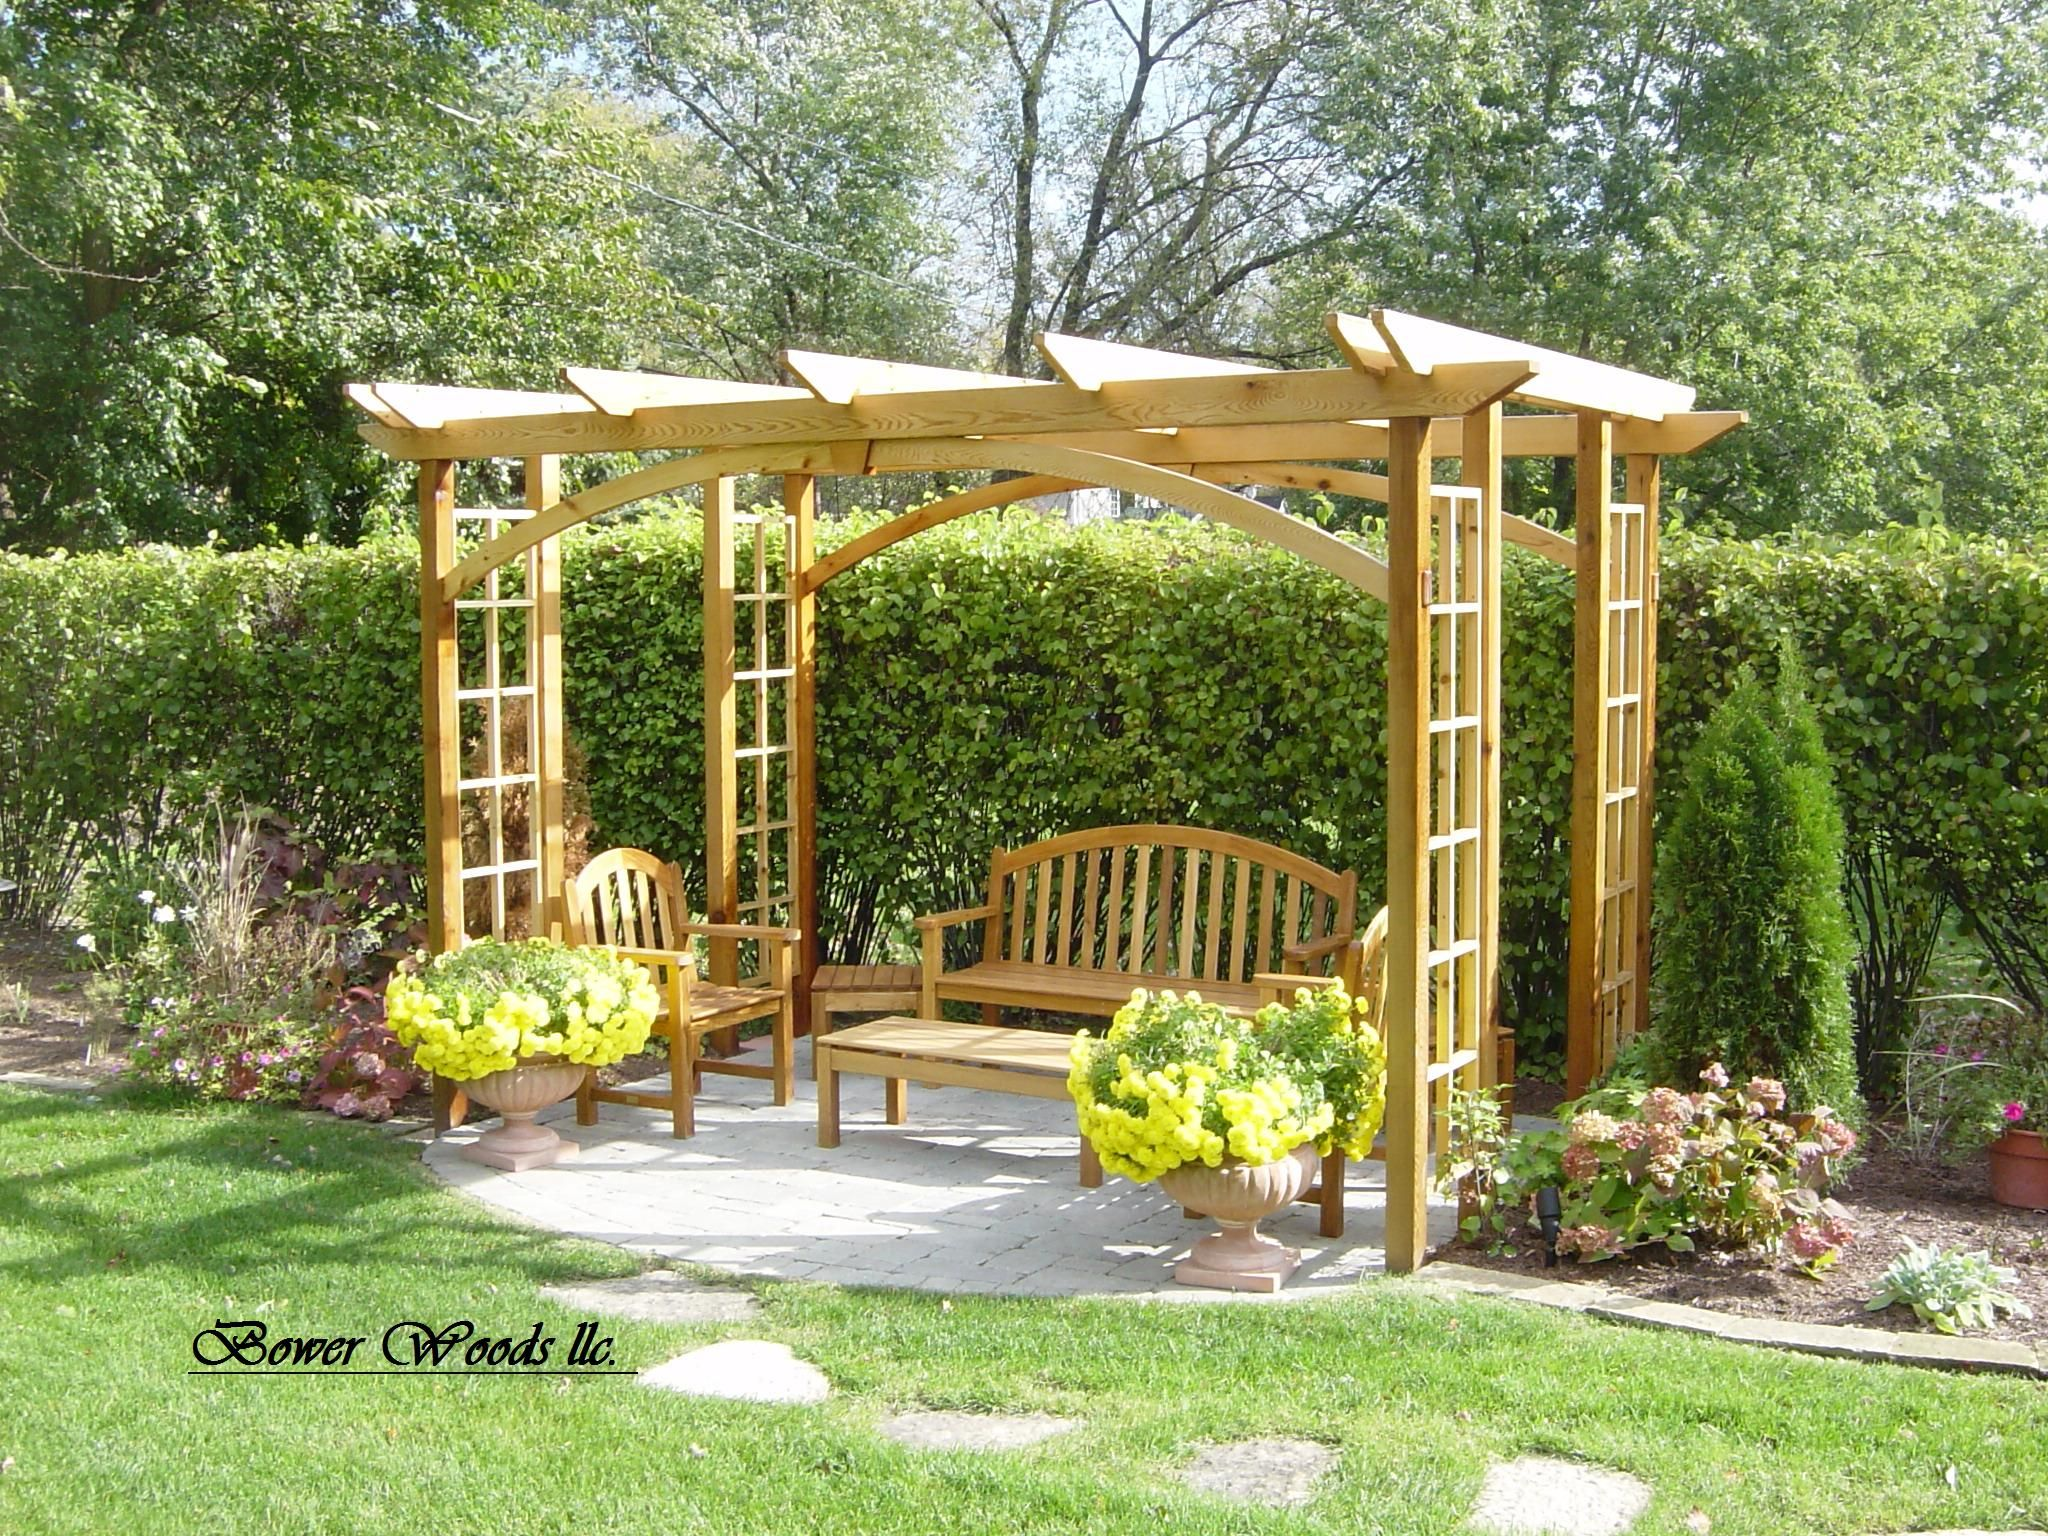 construire une pergola pergolas garden structures and. Black Bedroom Furniture Sets. Home Design Ideas